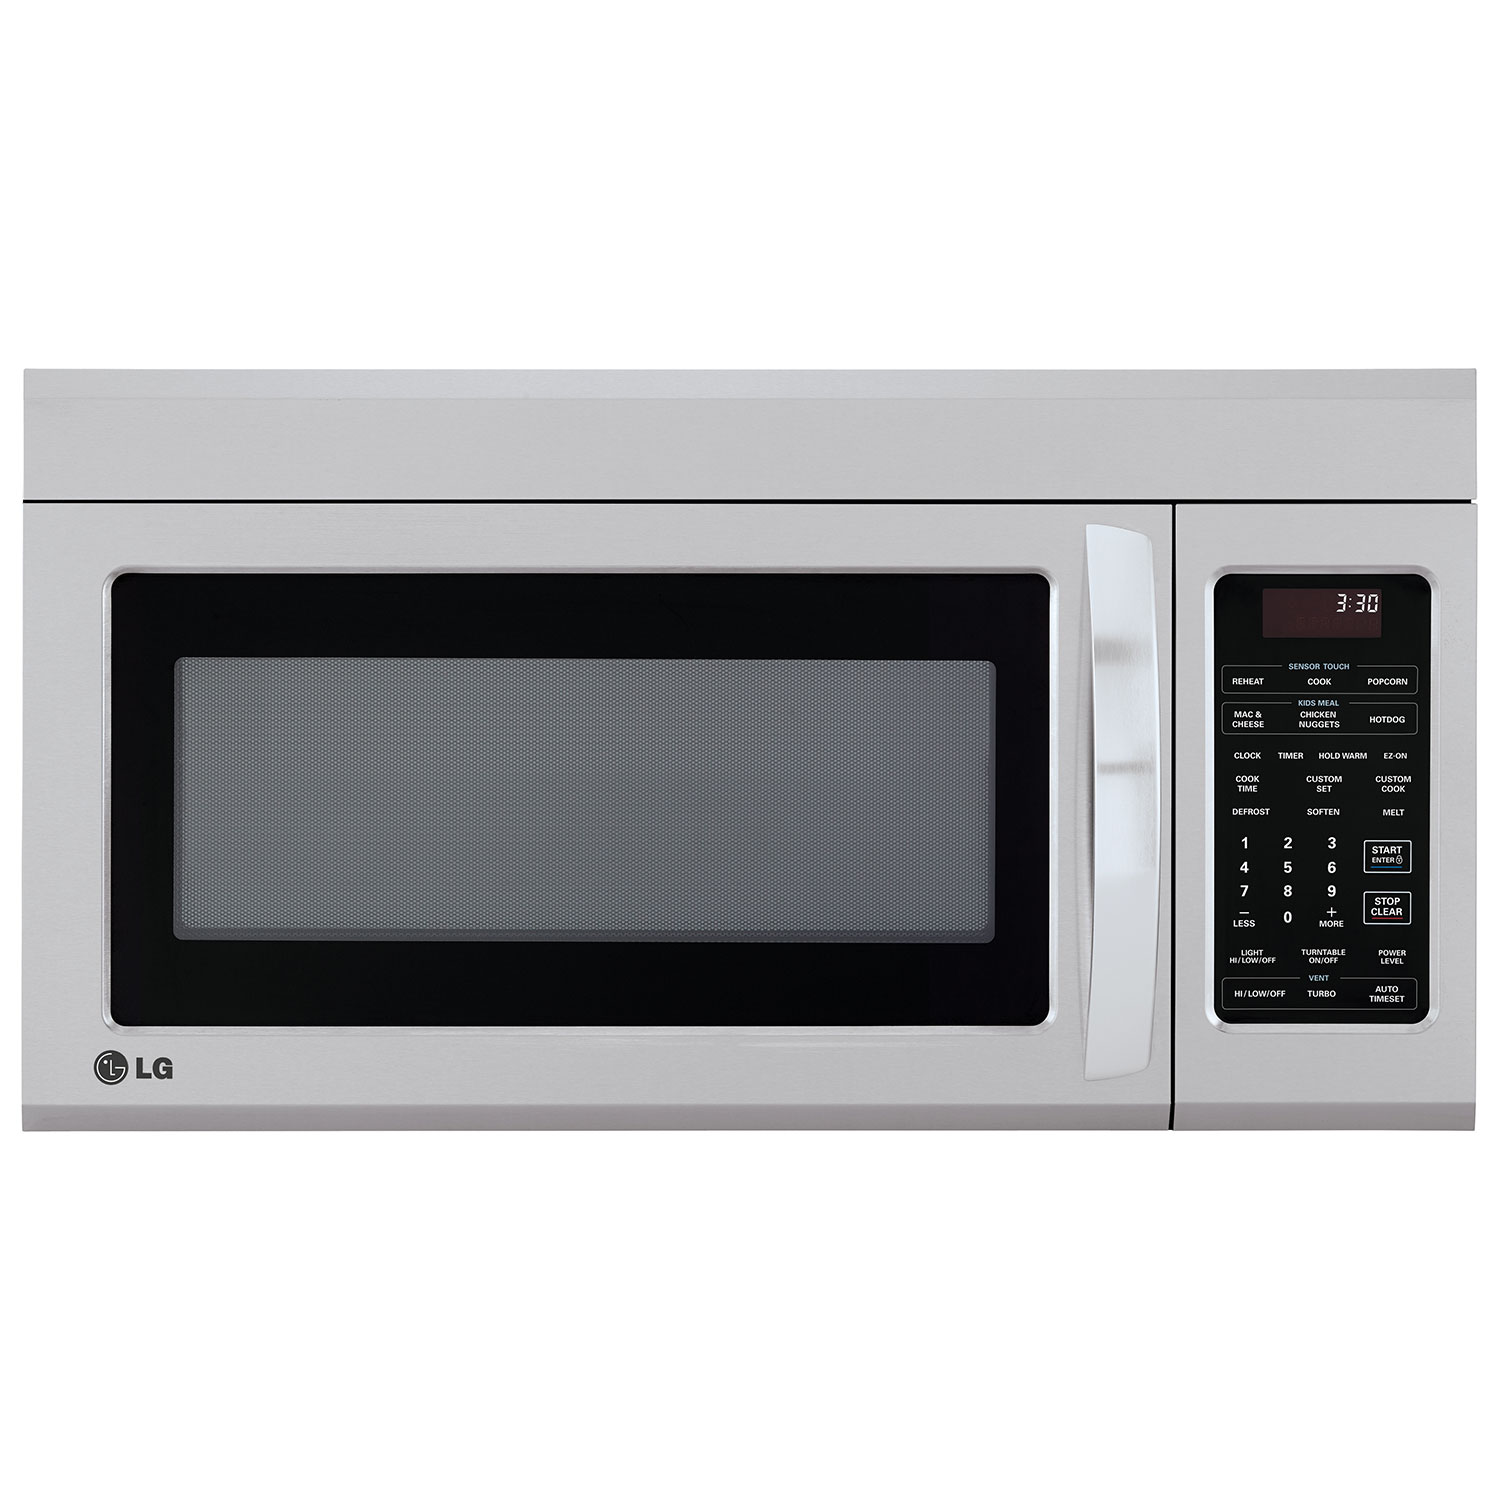 Whirlpool white ice microwave canada - Lg Over The Range Microwave 1 8 Cu Ft Stainless Steel